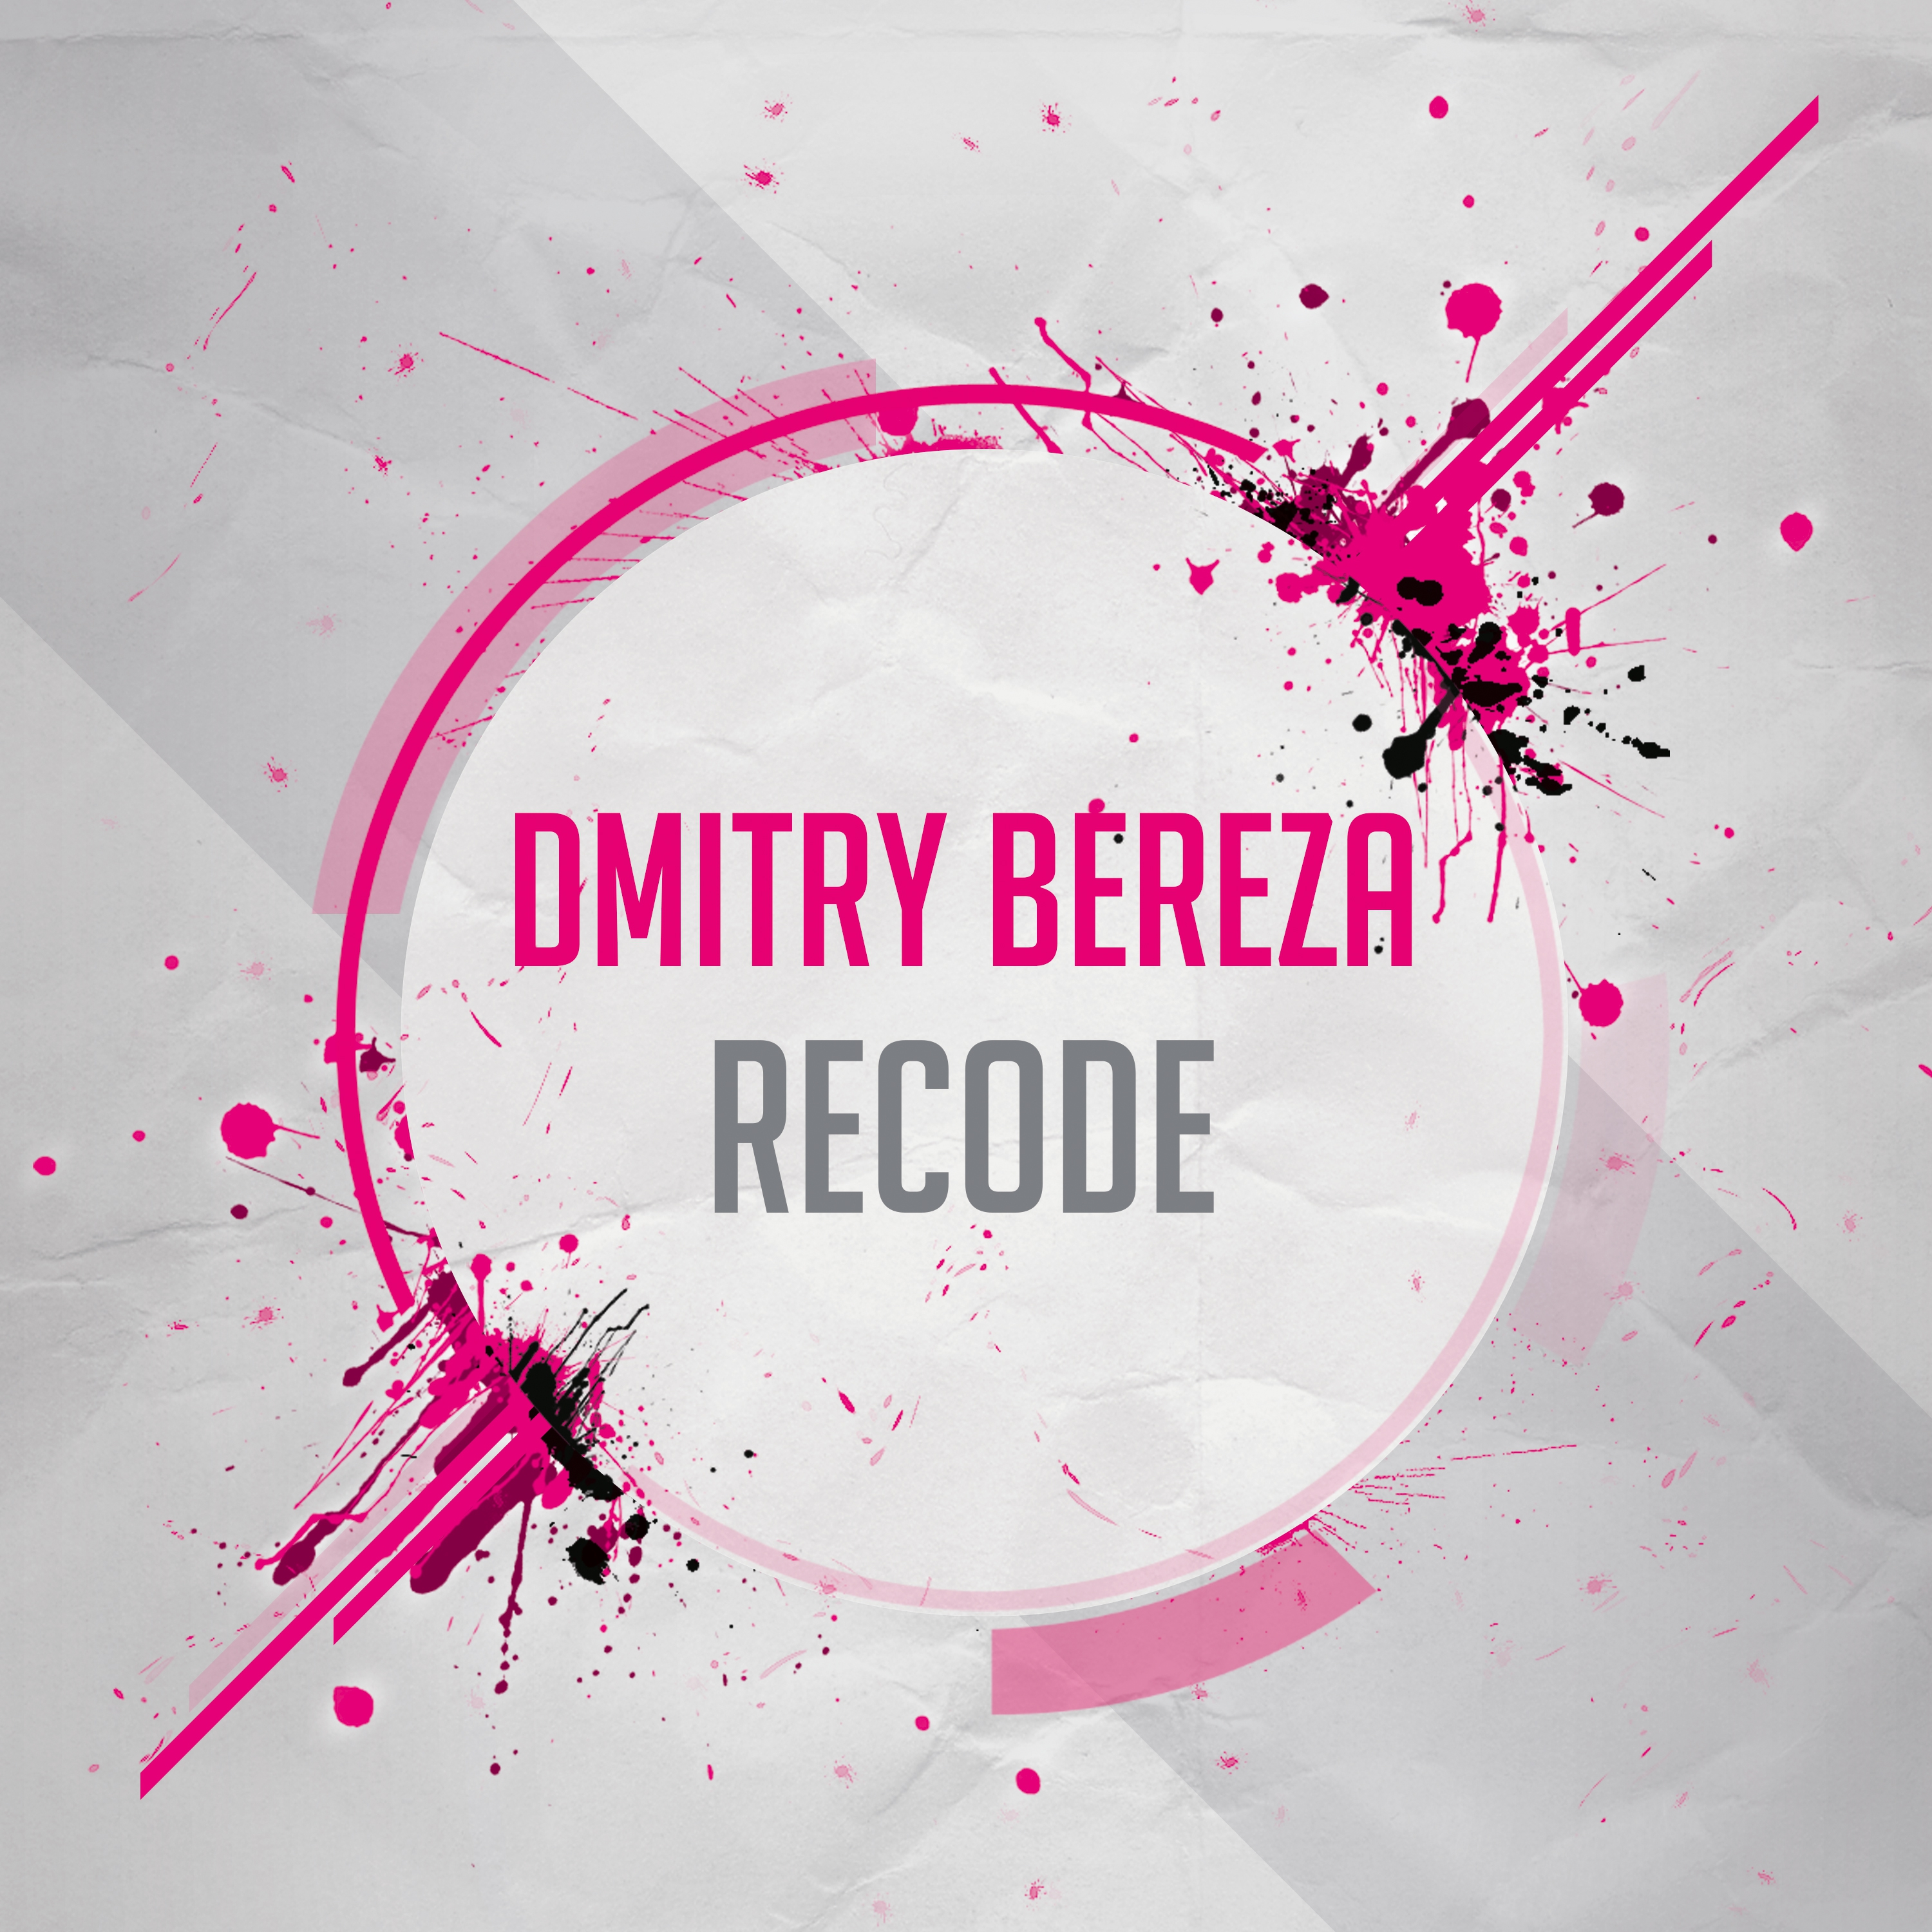 Dmitry Bereza - Recode (Original Mix)